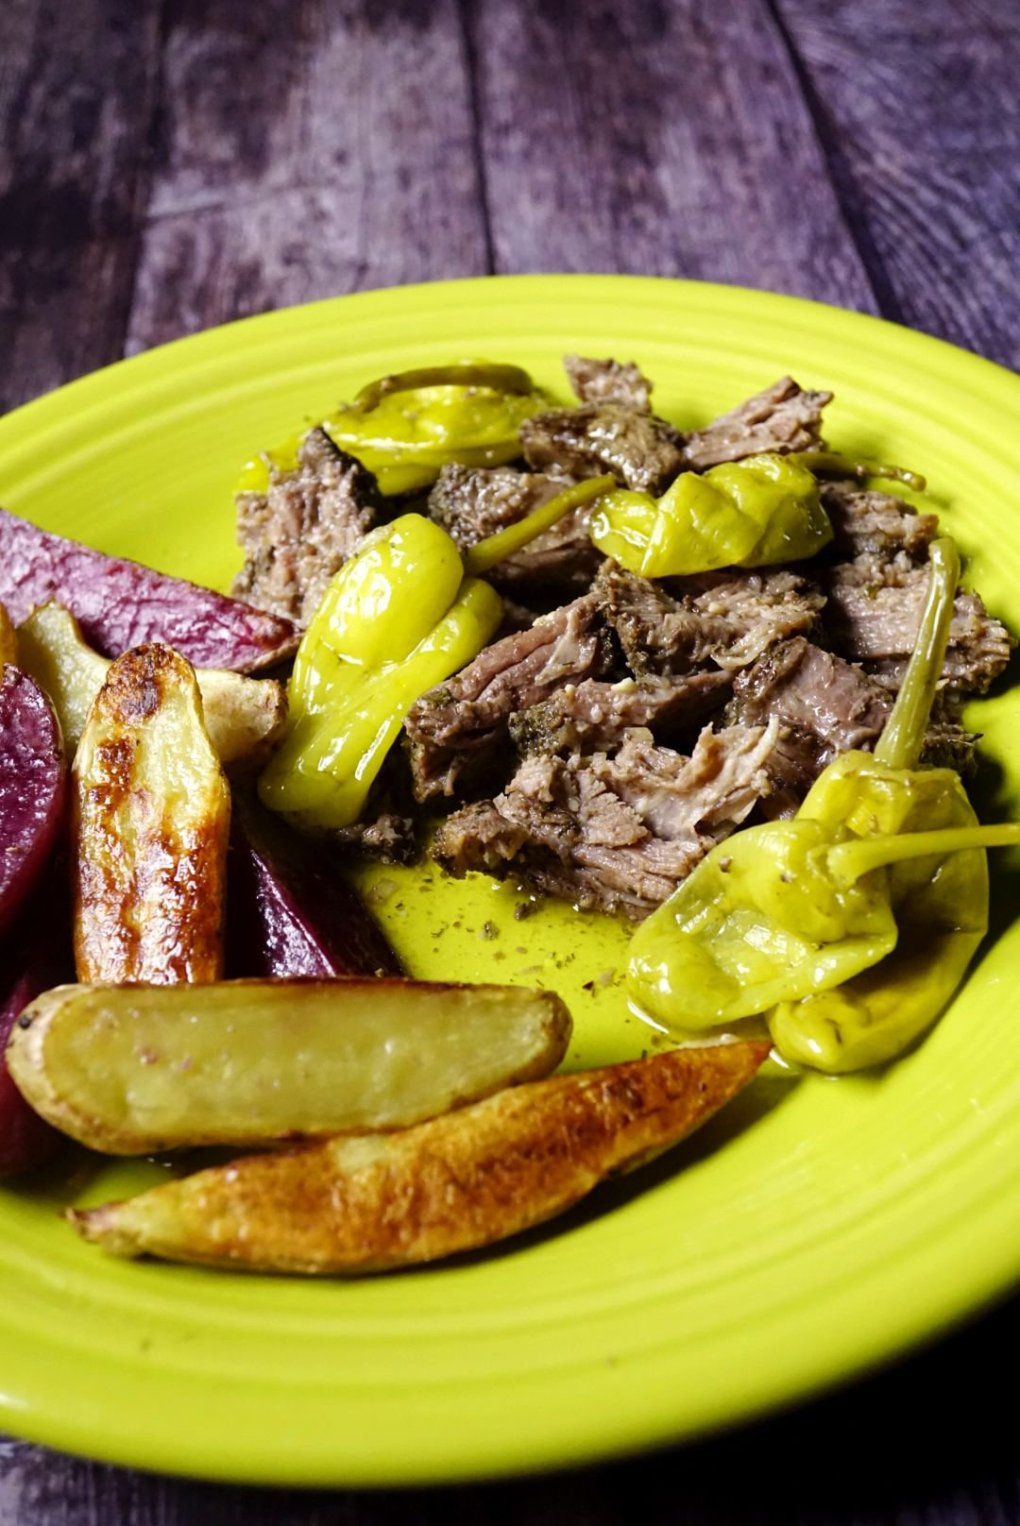 Paleo Mississippi Roast Melt In Your Mouth Meat Recipe (Slow-Cooker) (Gluten-Free)